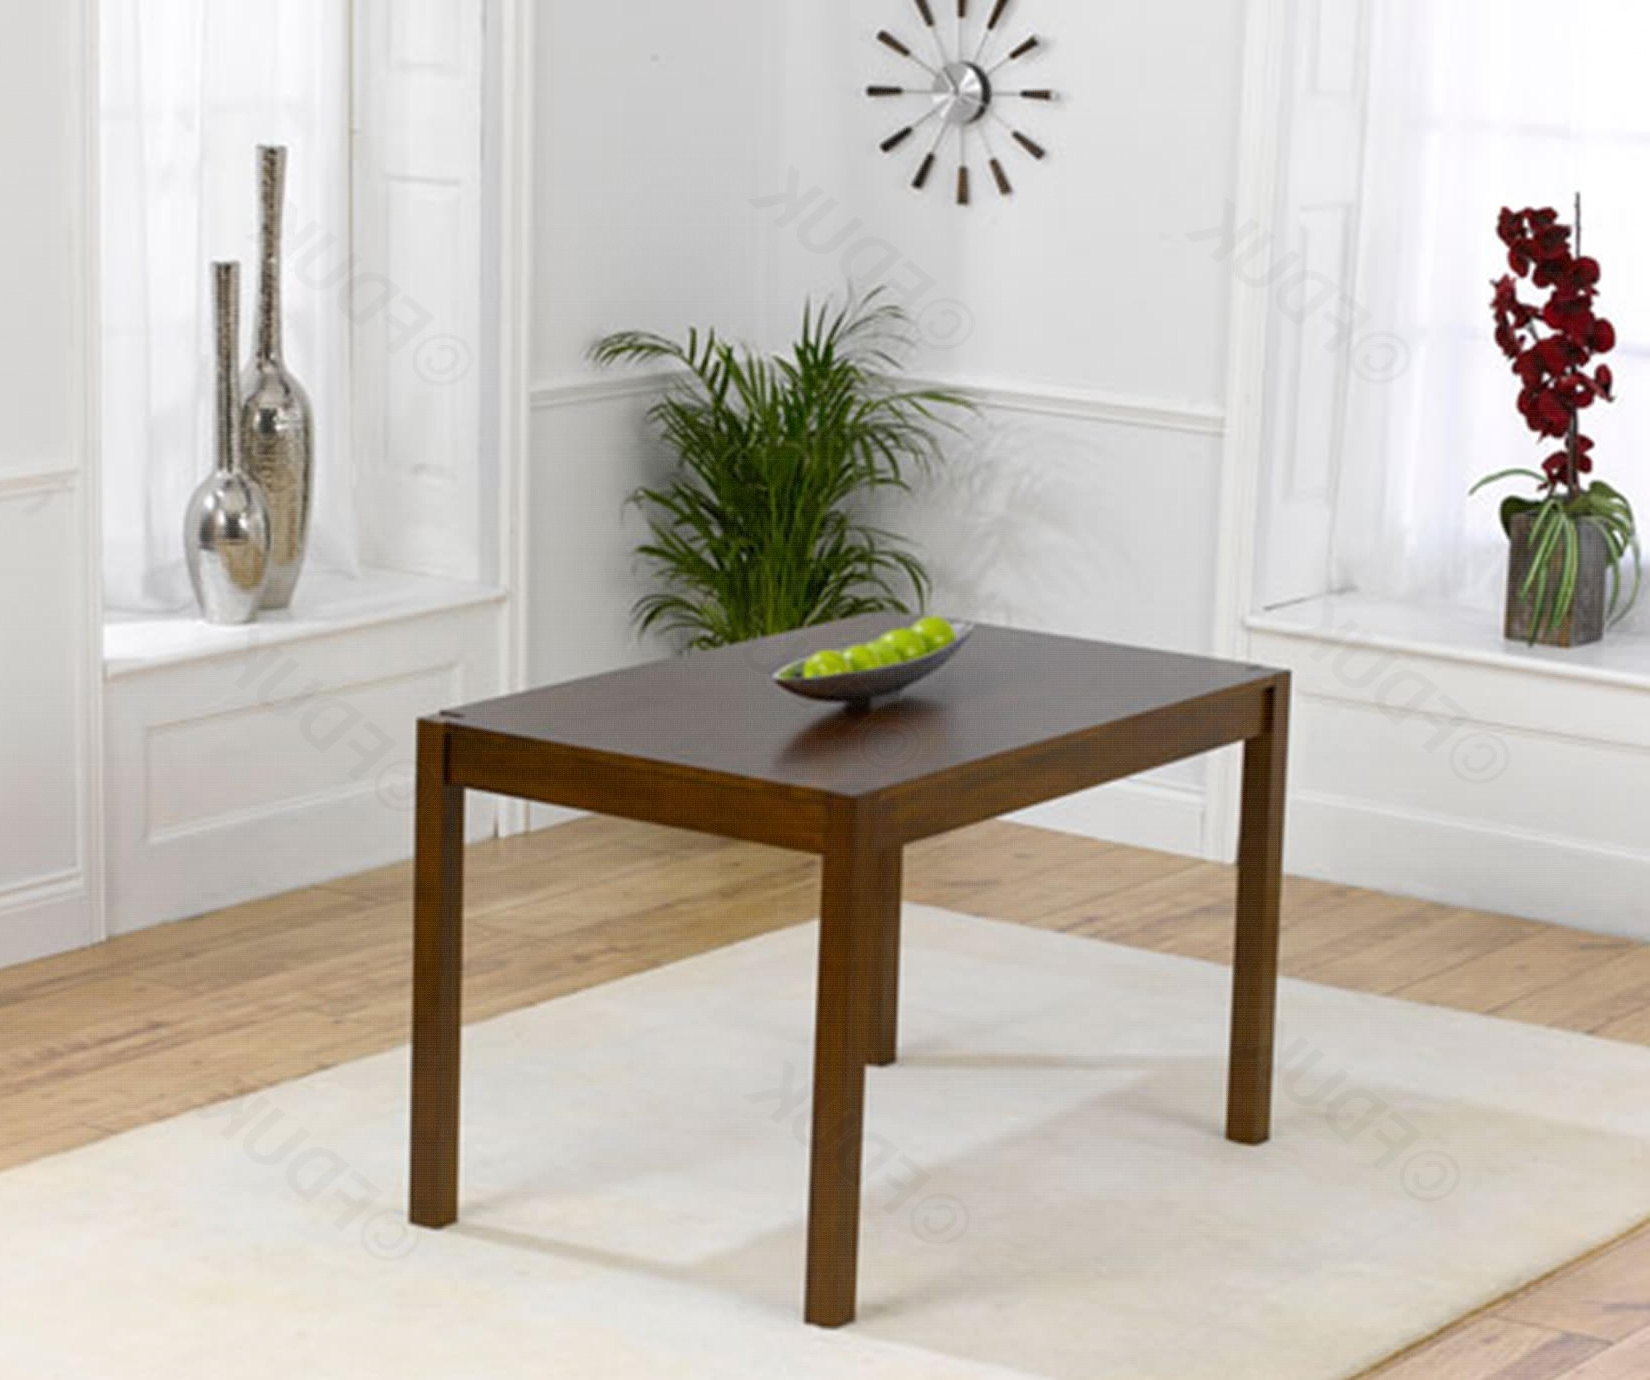 Marbella Dining Tables With Regard To Most Popular Mark Harris Marbella (View 15 of 25)